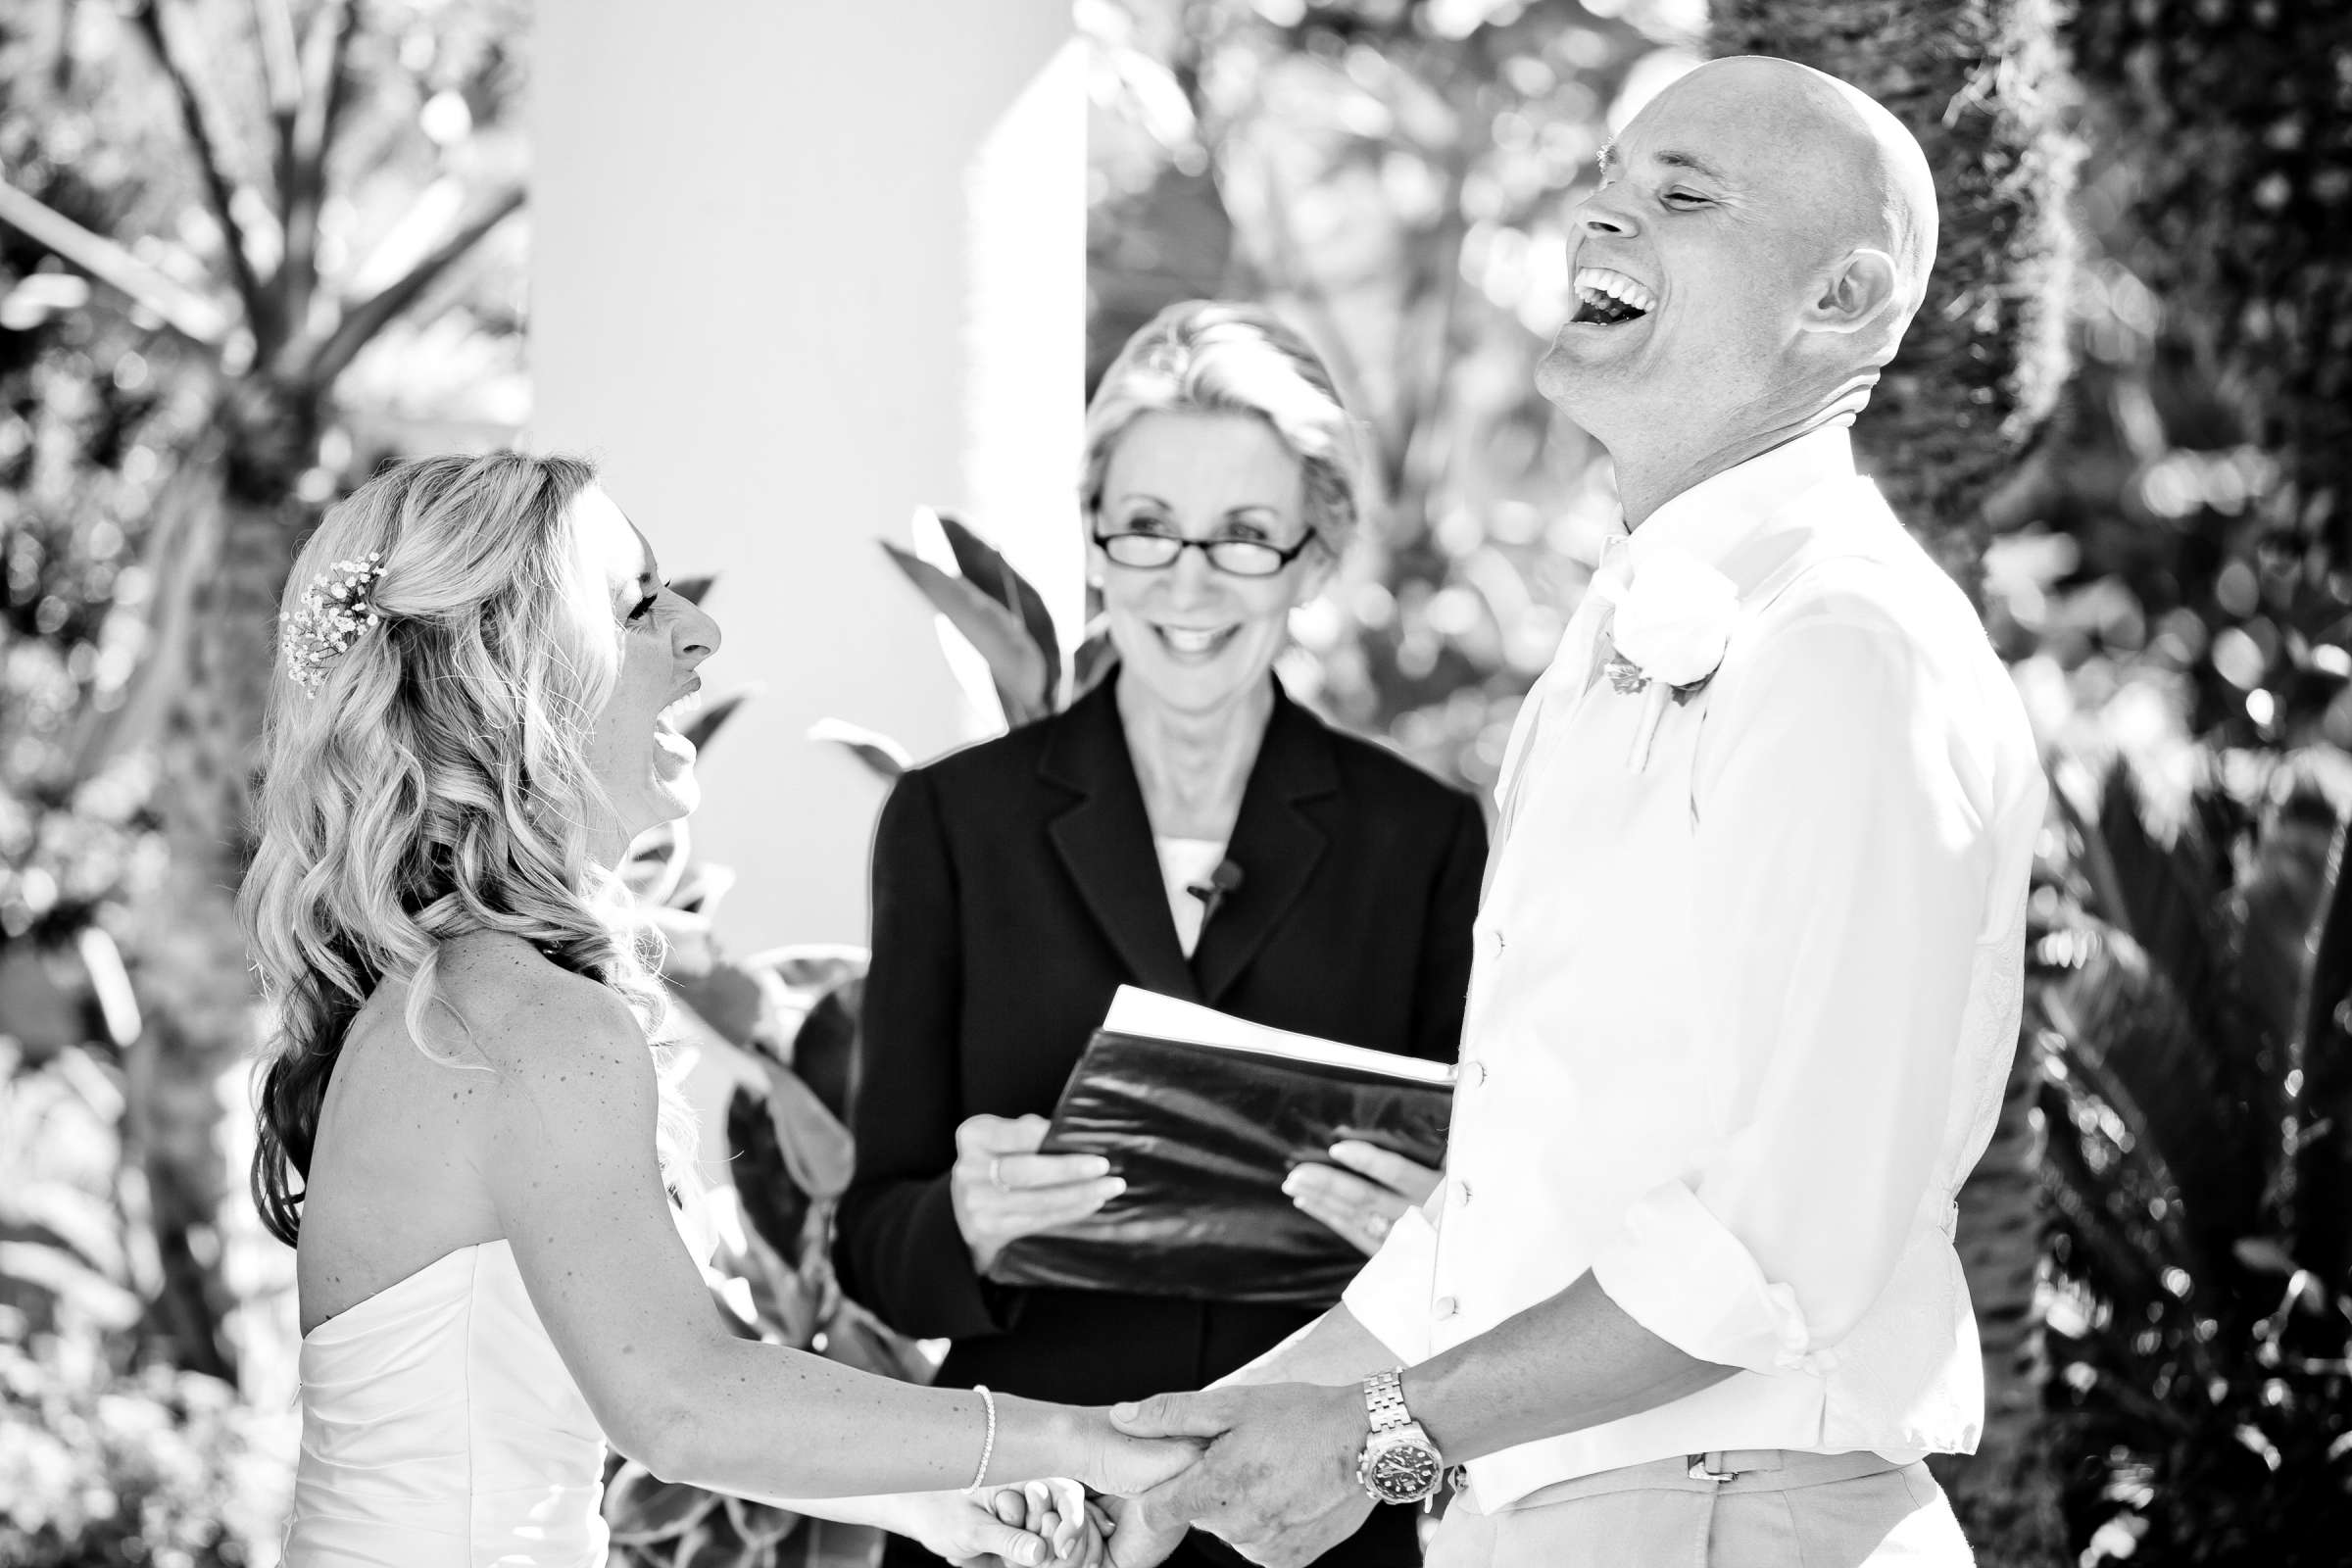 La Jolla Shores Hotel Wedding coordinated by I Do Weddings, Stefanie and Craig Wedding Photo #373309 by True Photography